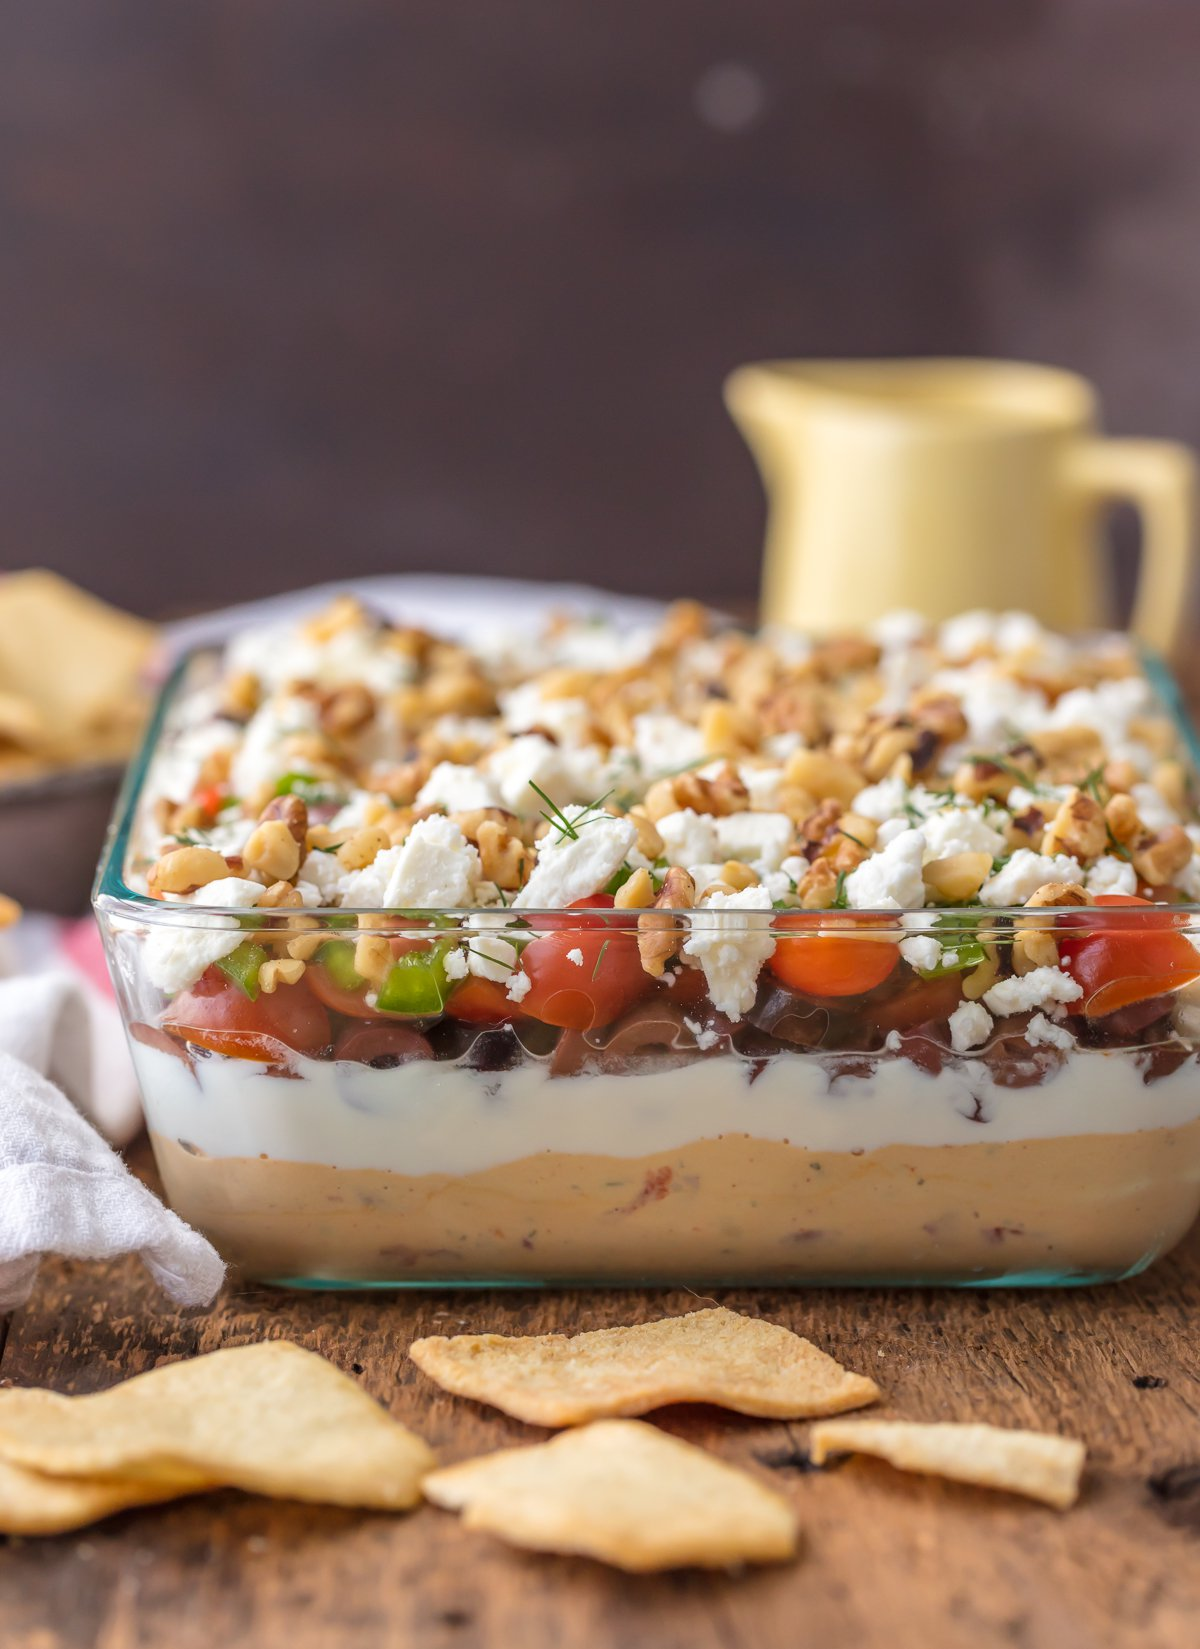 This 7 layer dip is a must-have appetizer - AOL Food